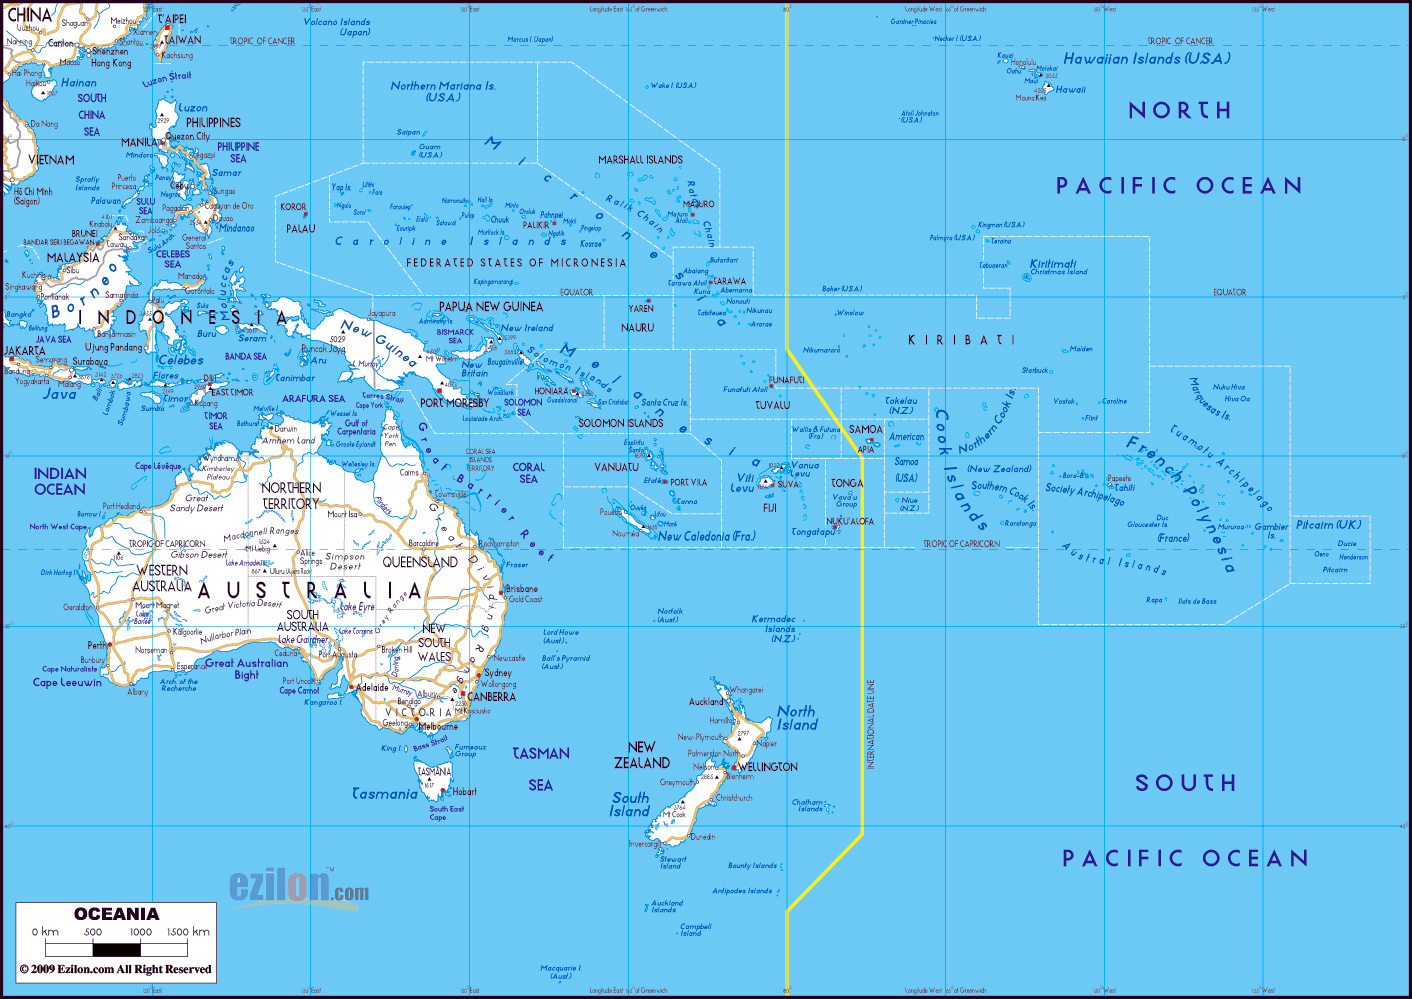 Australia Countries And Capitals Map.Large Detailed Roads Map Of Australia And Oceania With All